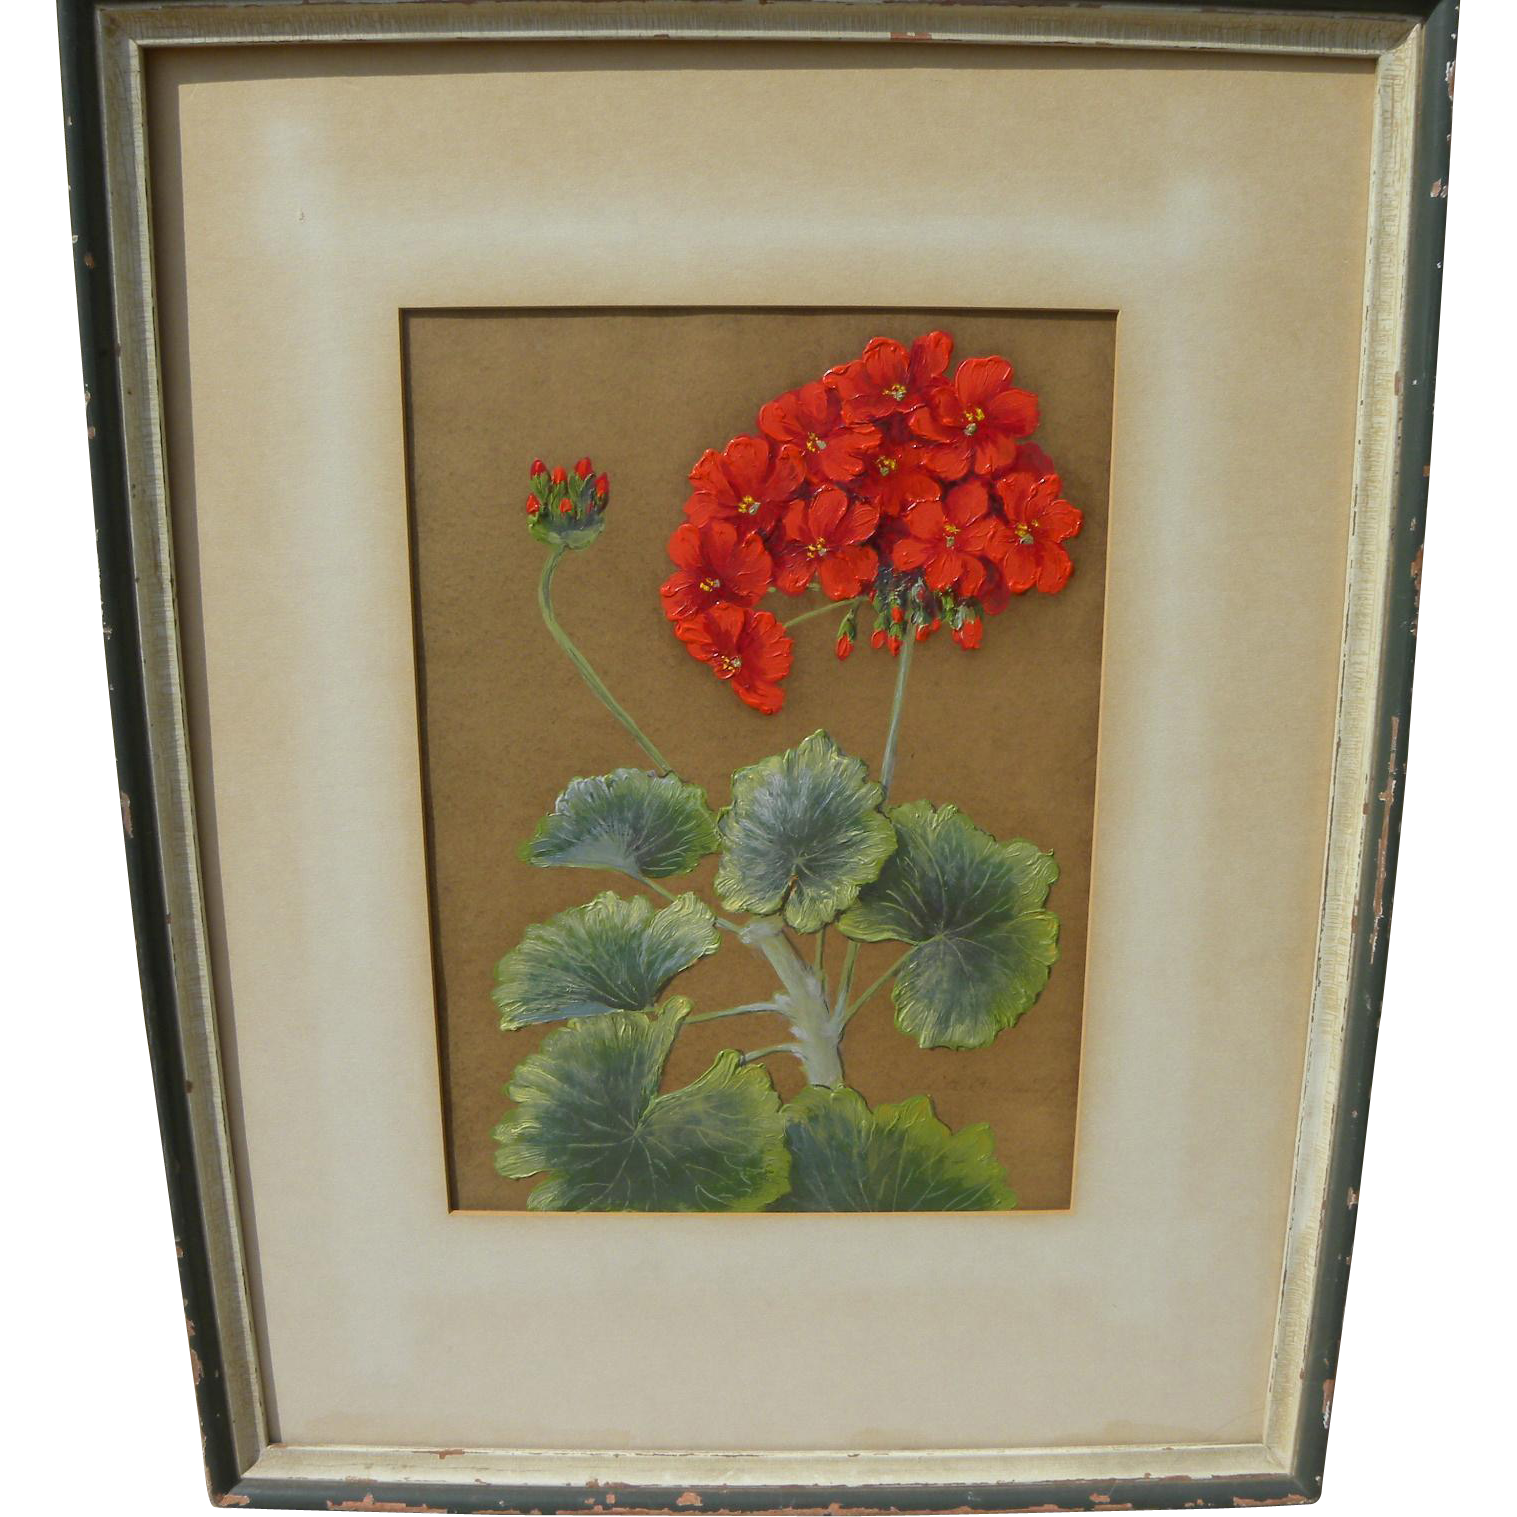 EDITH BRUNING (1899-1961) painting of geraniums by listed Northern California artist